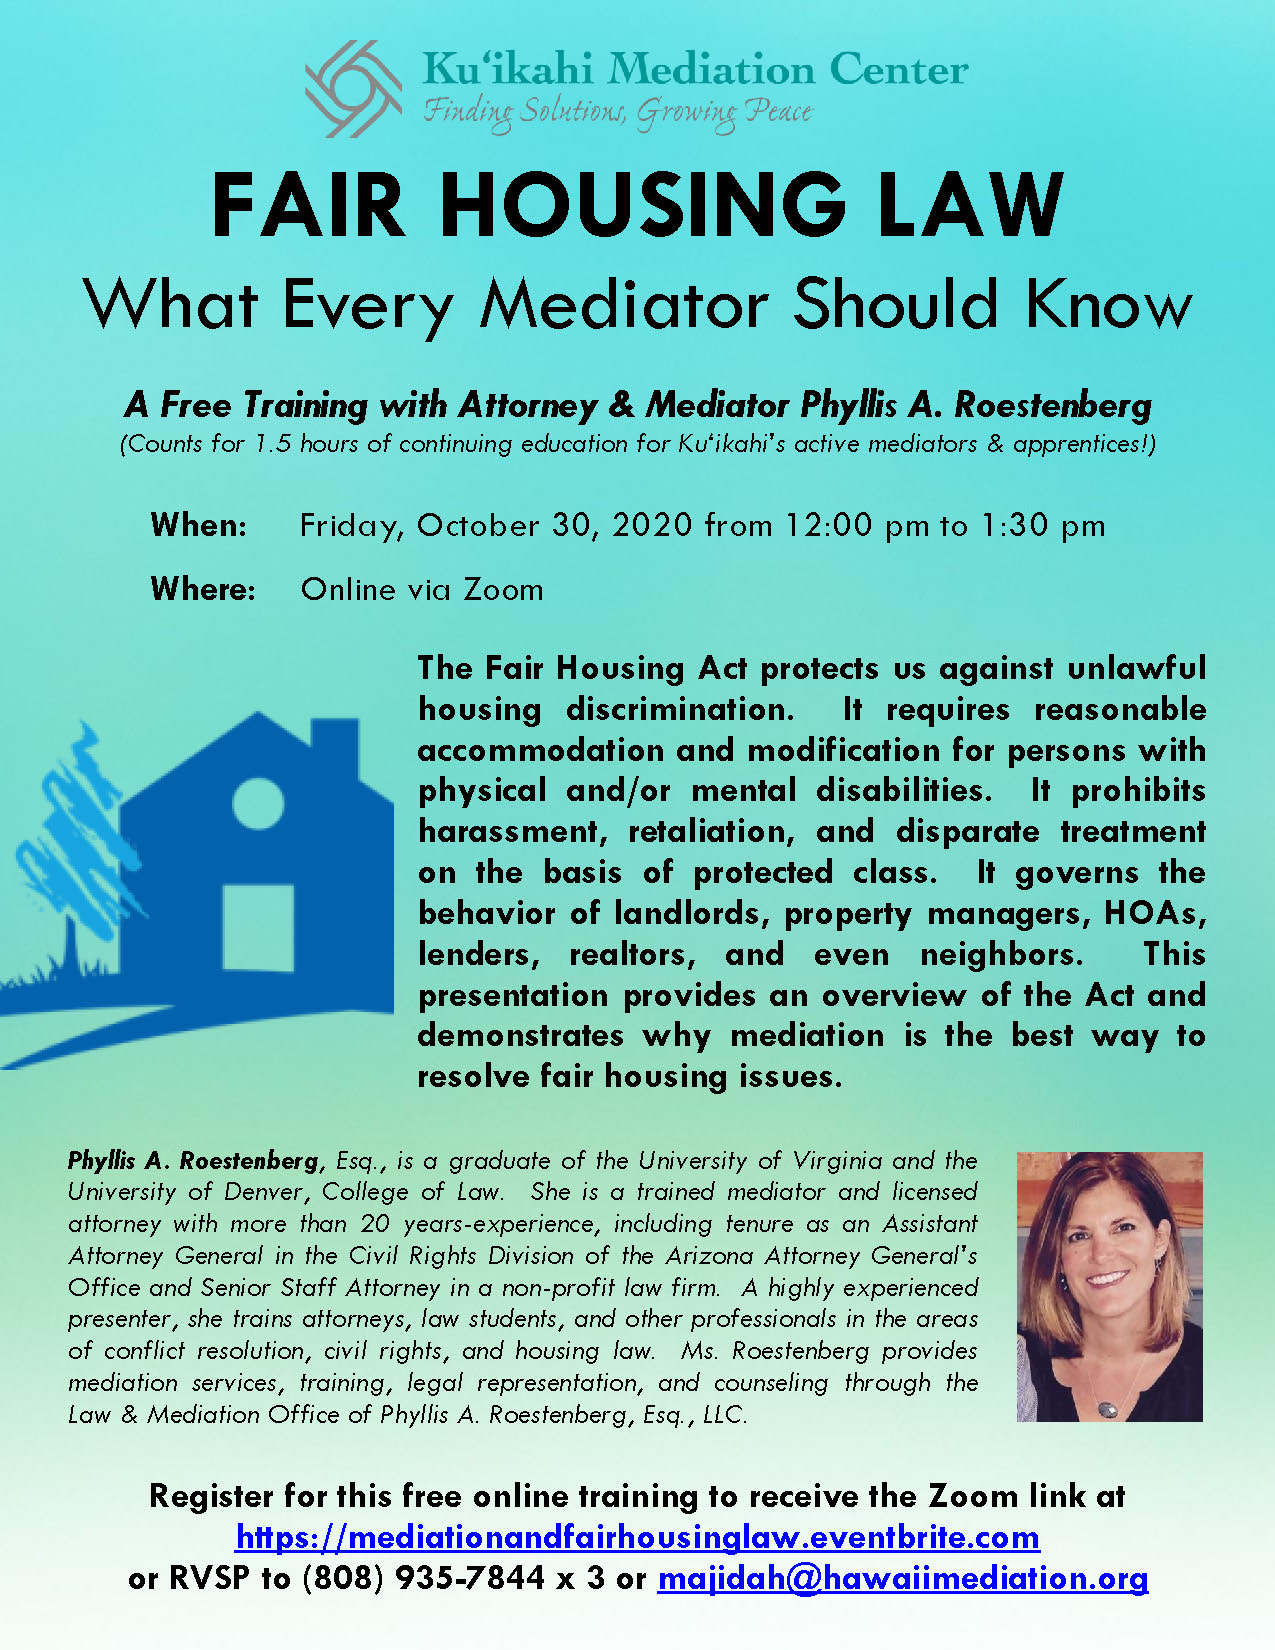 Flyer - Fair Housing Law - What Every Mediator Should Know 10-30-20